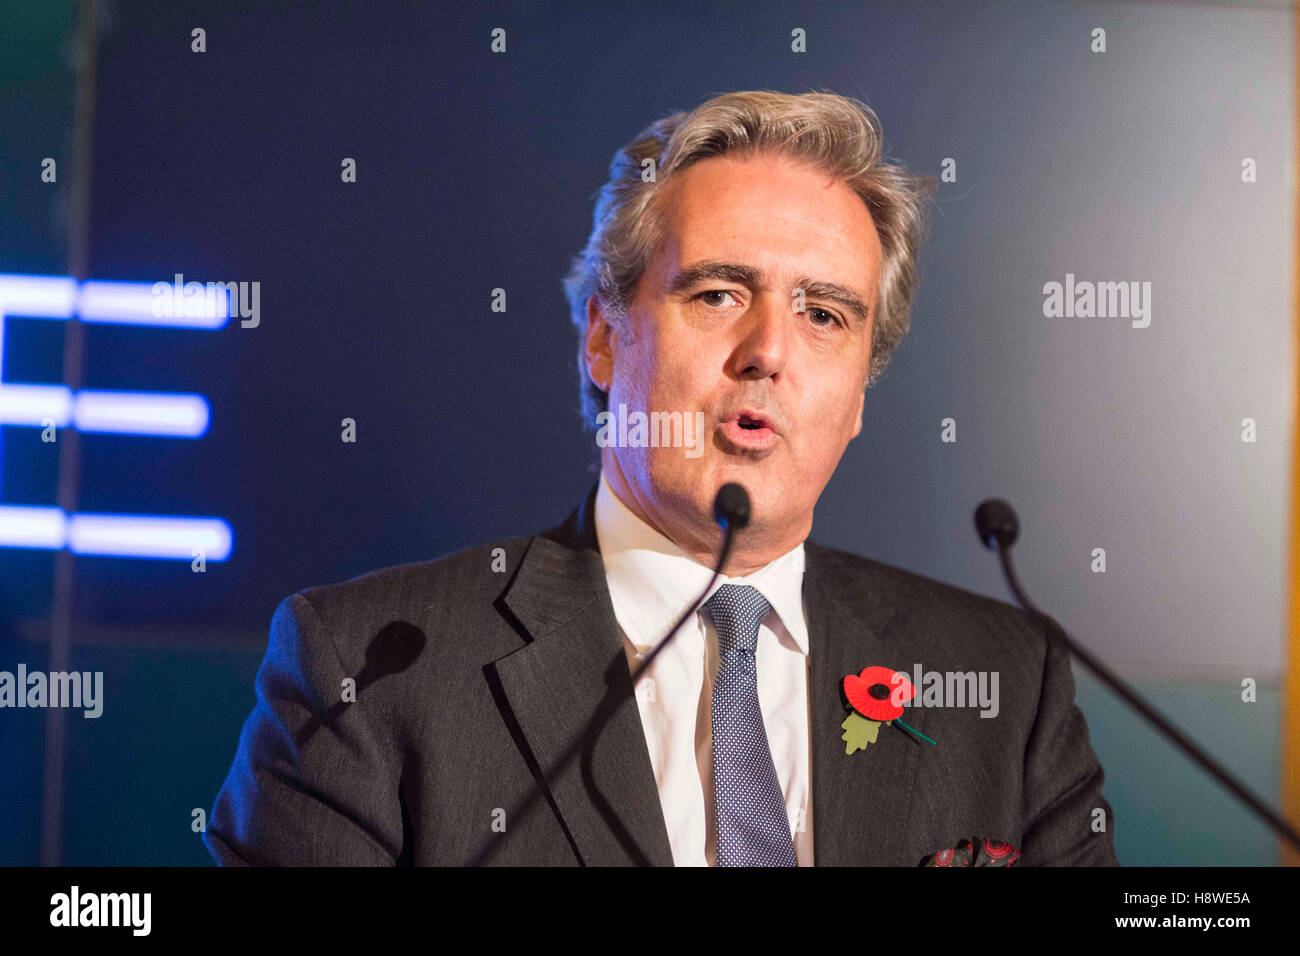 Mark Robert Timothy Garnier - a British Conservative Party politician who is the Member of Parliament for Wyre Forest - Stock Image